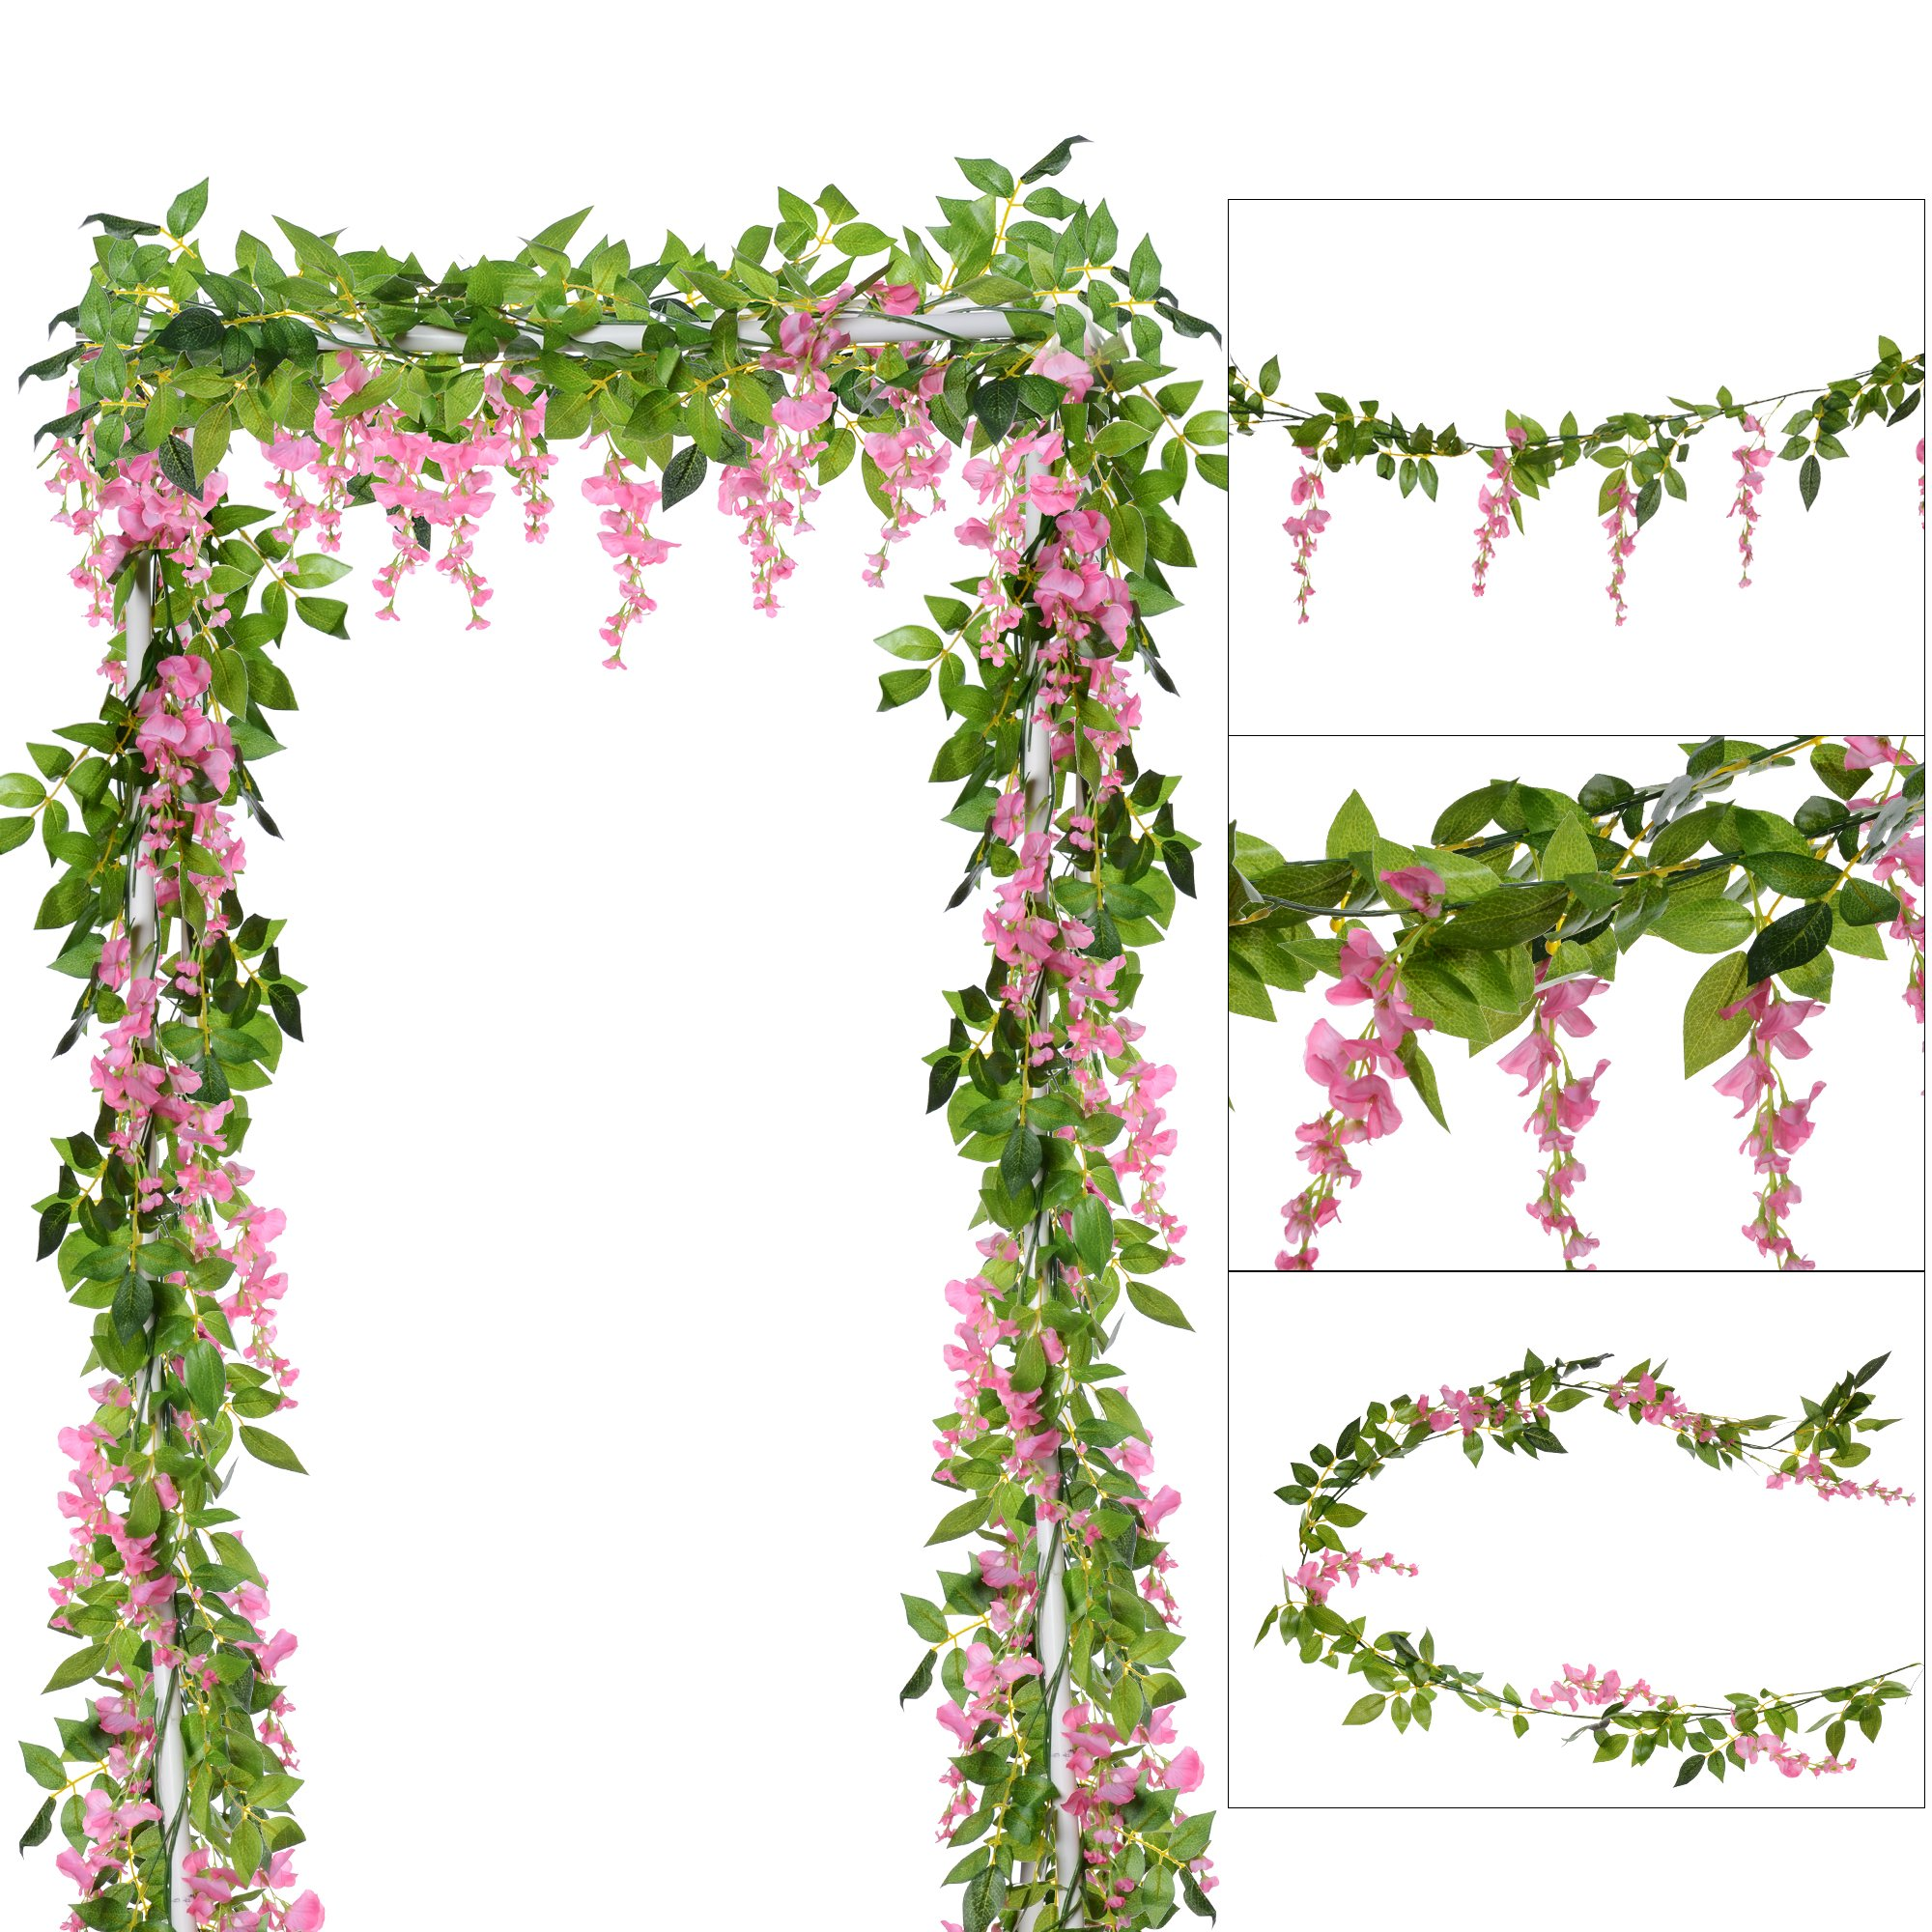 DearHouse 4Pcs 6.6Ft/piece Artificial Flowers Silk Wisteria Garland Artificial Wisteria Vine Rattan Silk Hanging Flower For Home Garden Outdoor Ceremony Wedding Arch Floral Decor(Pink)